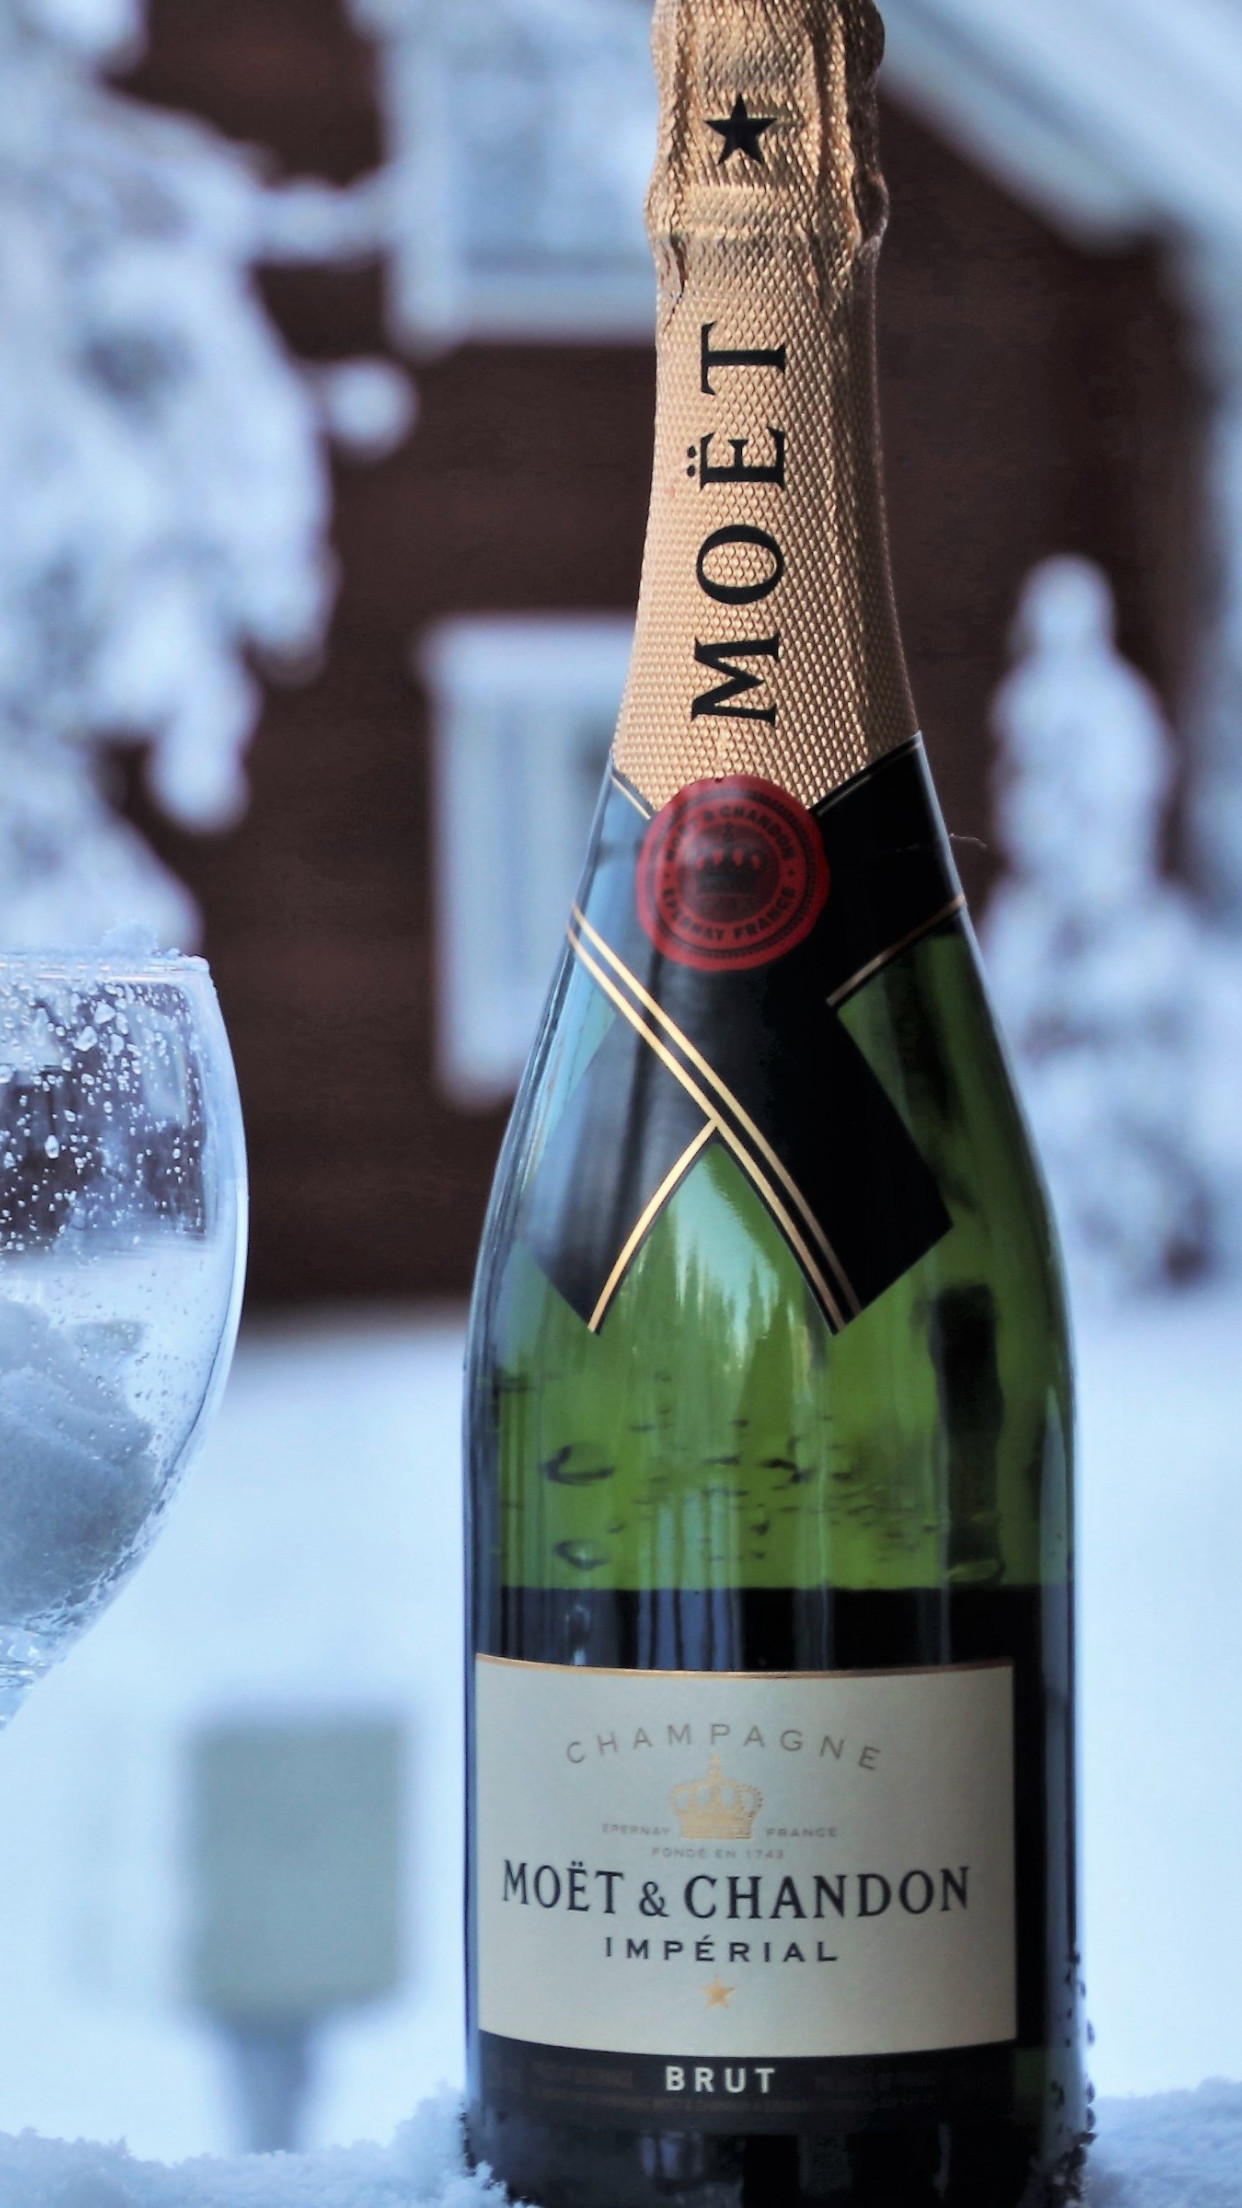 Moet champagne | 1242x2208 wallpaper